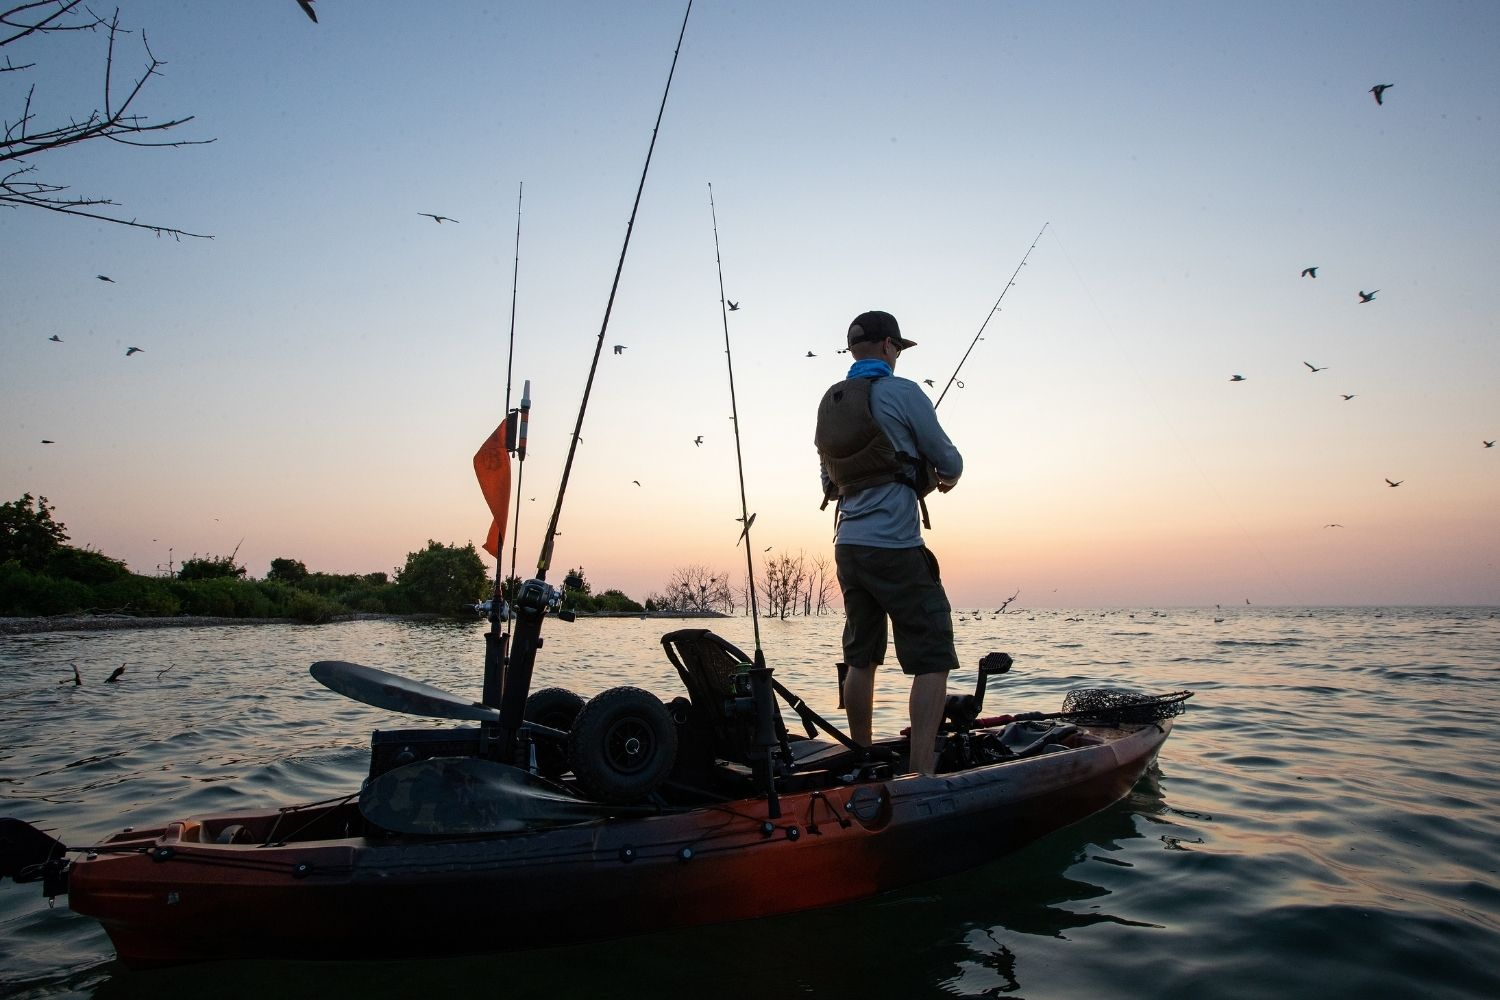 How To Choose the Right Outboard Motor for Your Watercraft